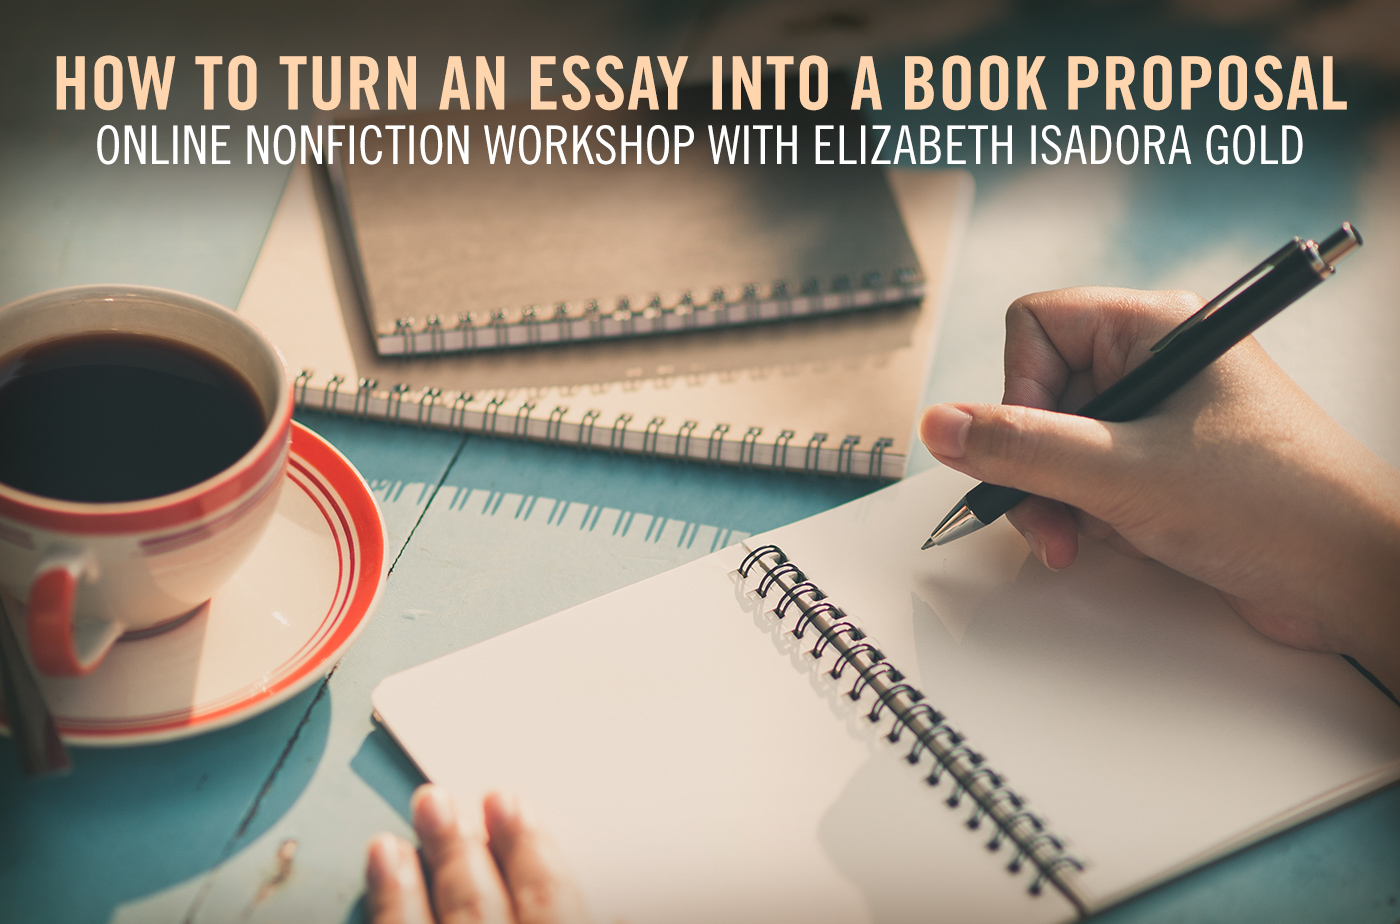 Catapult online classes: Elizabeth Isadora Gold, How to Turn an Essay into a Book Proposal, Nonfiction, Workshop